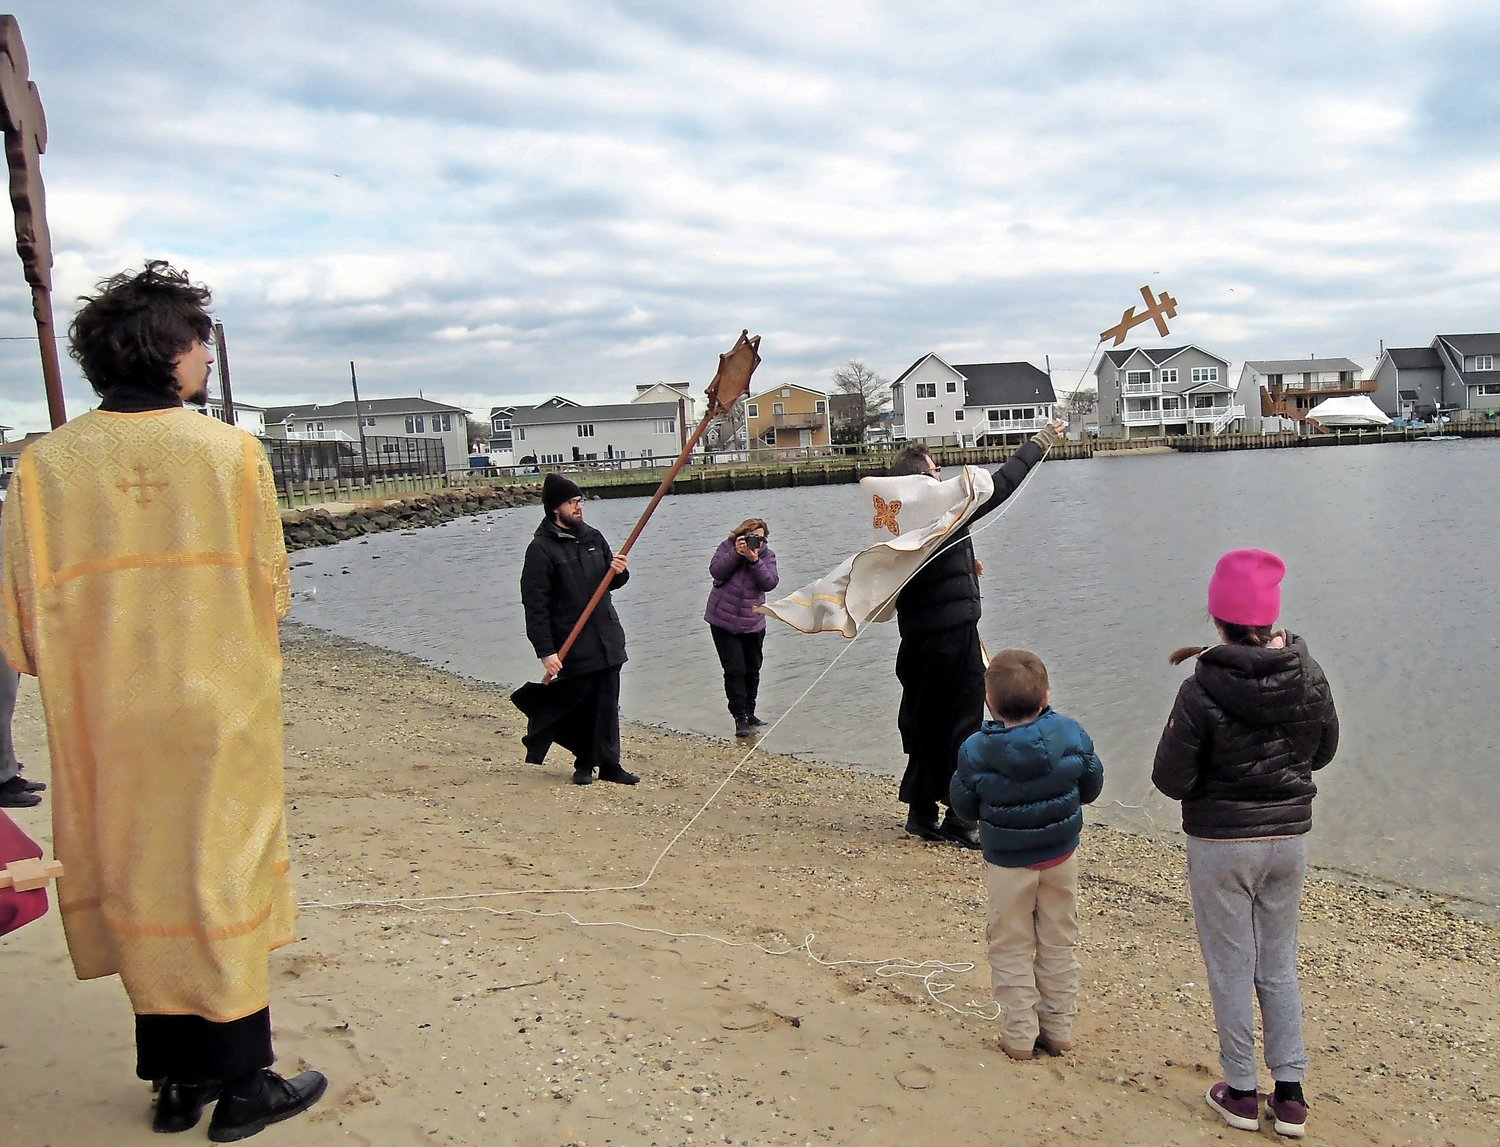 V.Rev. Martin Kraus threw the traditional wooden cross into the bay three times.